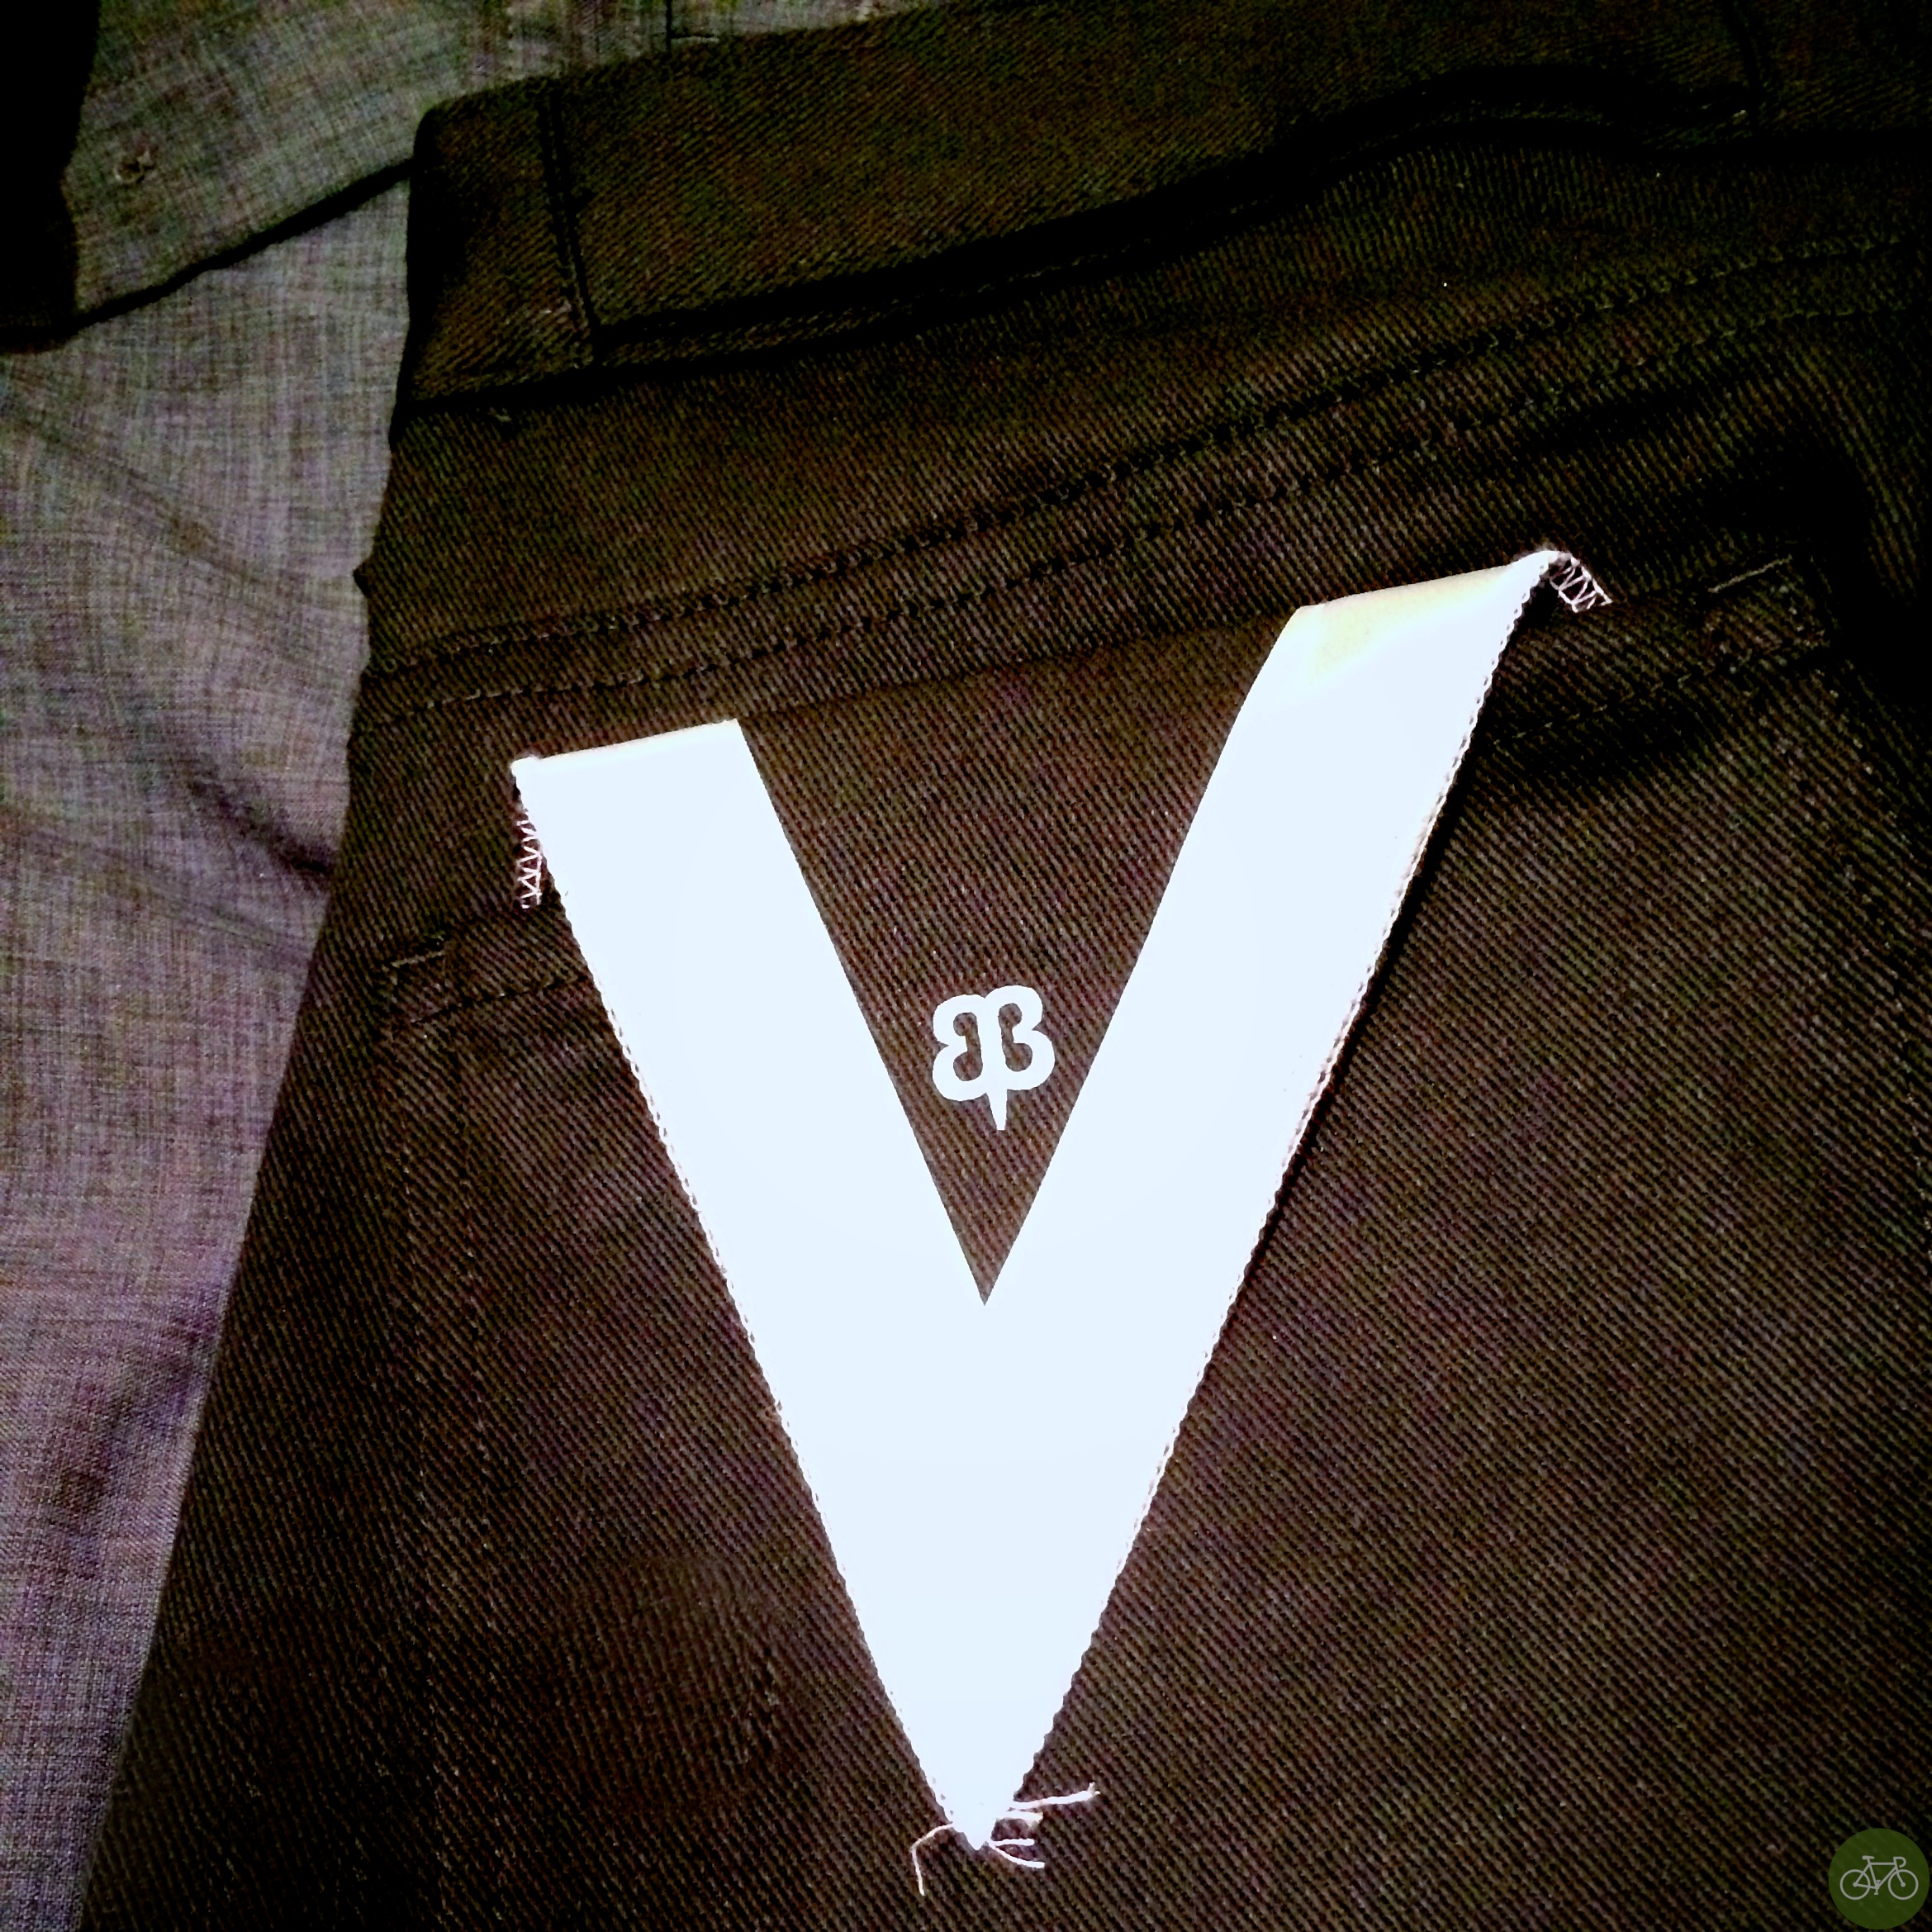 V is for Visiblity